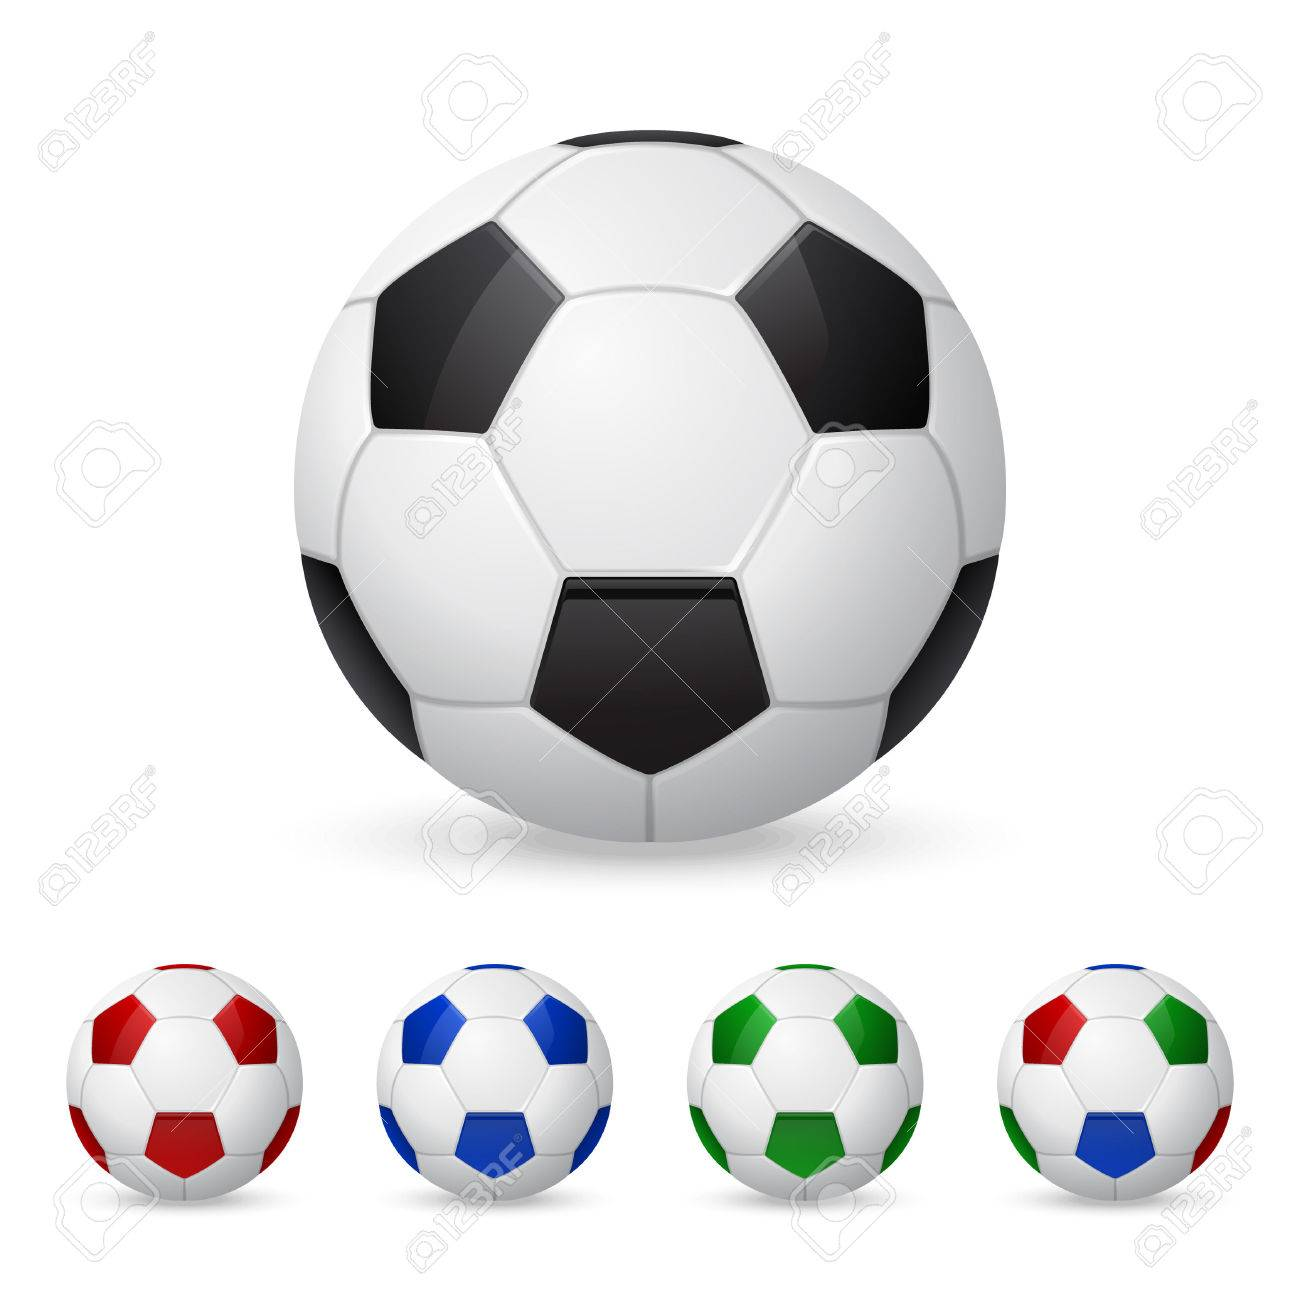 Set of three-dimensional olorful soccer balls. Isolated on white. Vector illustration. - 37973970